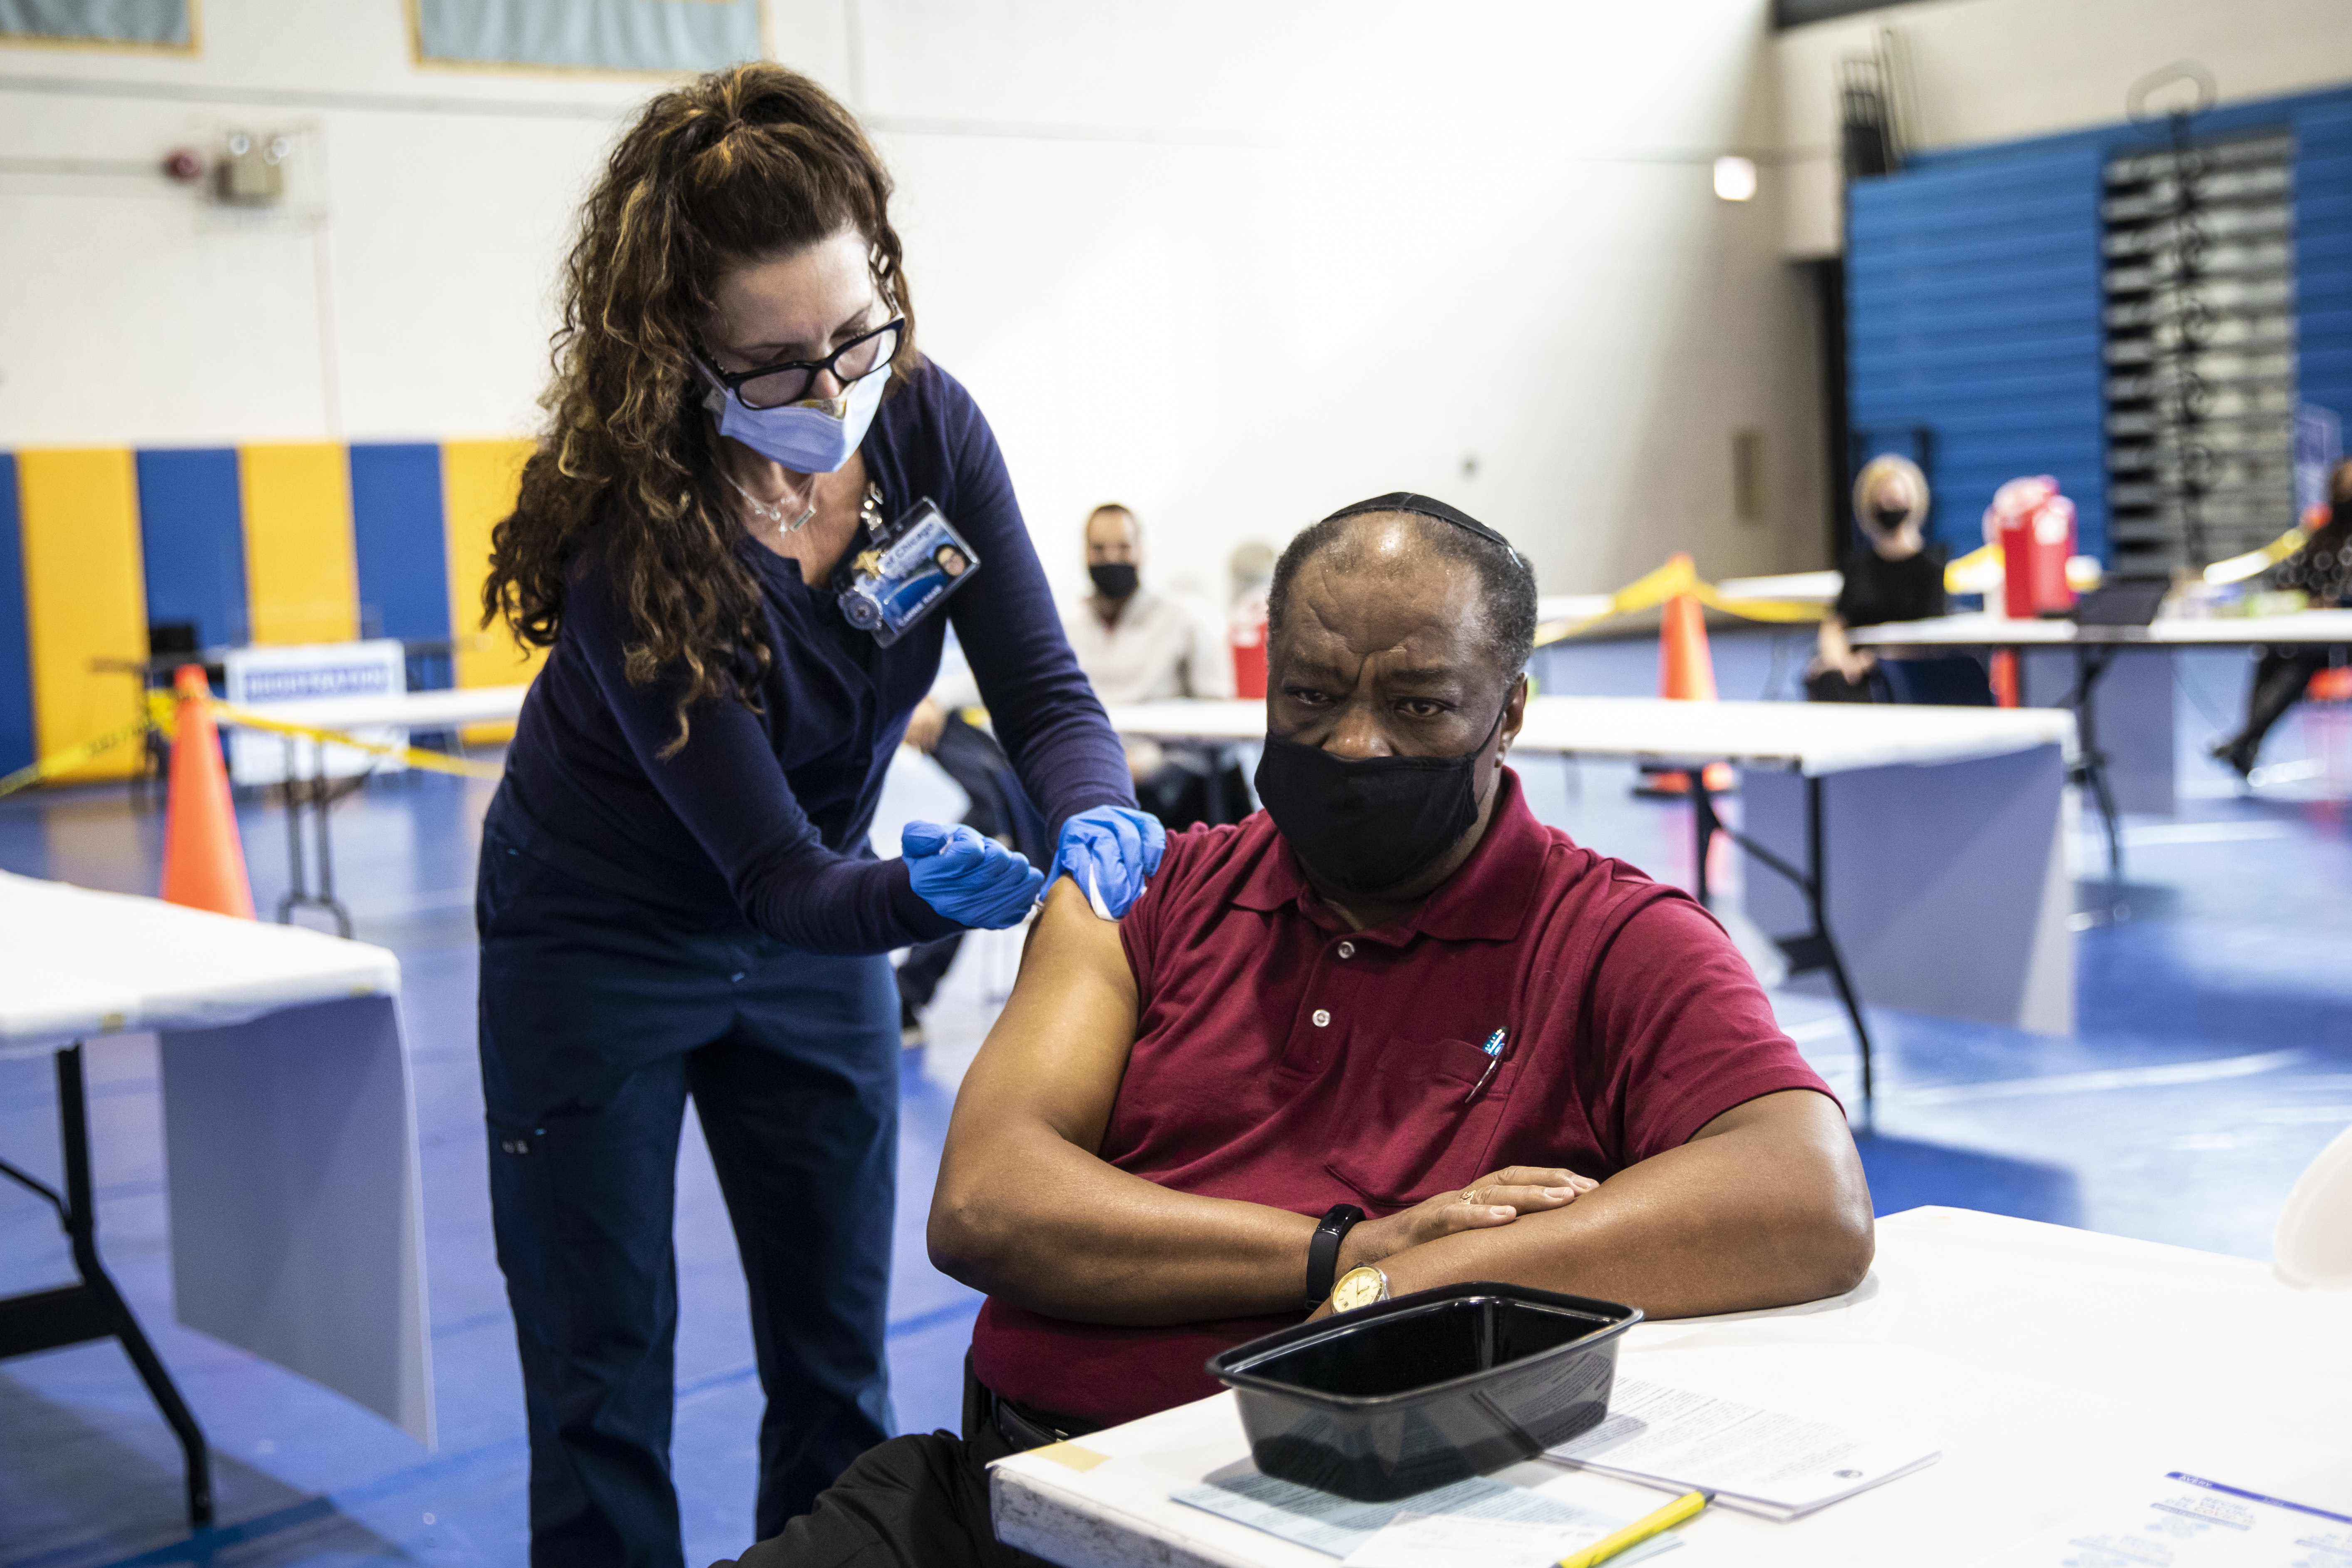 A Pfizer-BioNTech COVID-19 vaccine dose is administered at Richard J. Daley College last month.